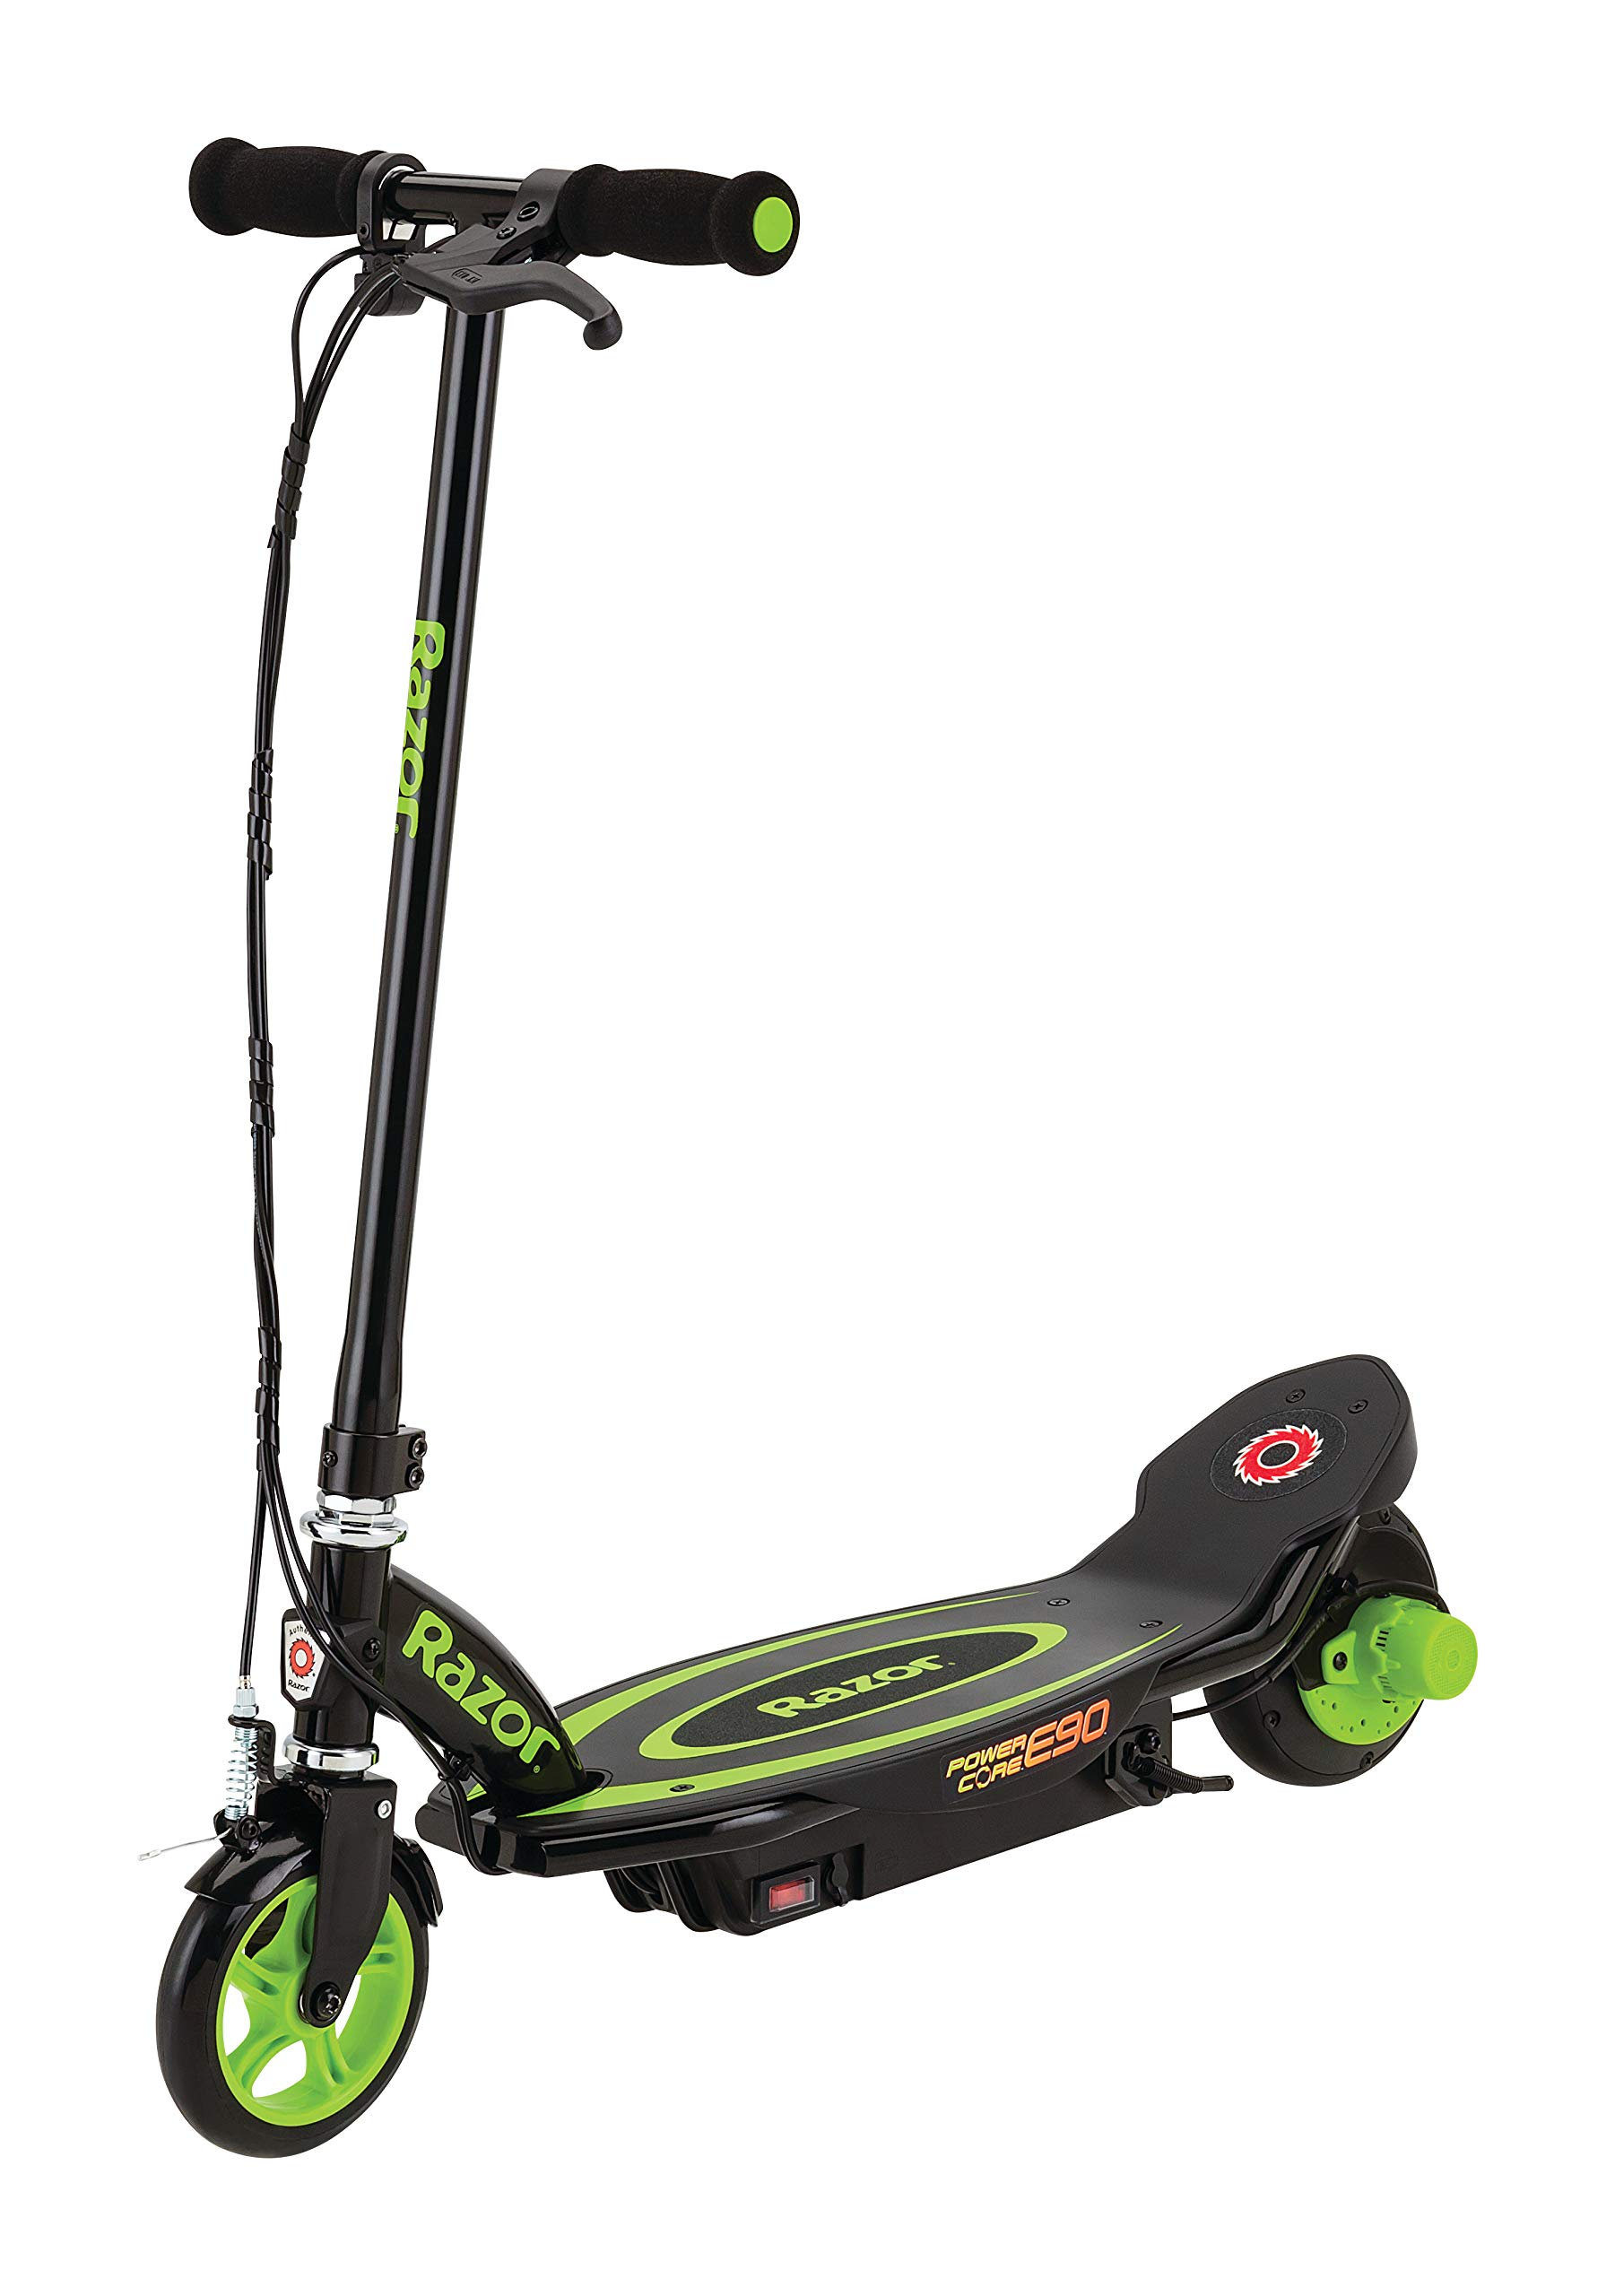 Razor Power Core E90 Electric Scooter - Hub Motor, Up to 10 mph and 80 min Ride Time, for Kids 8 and Up